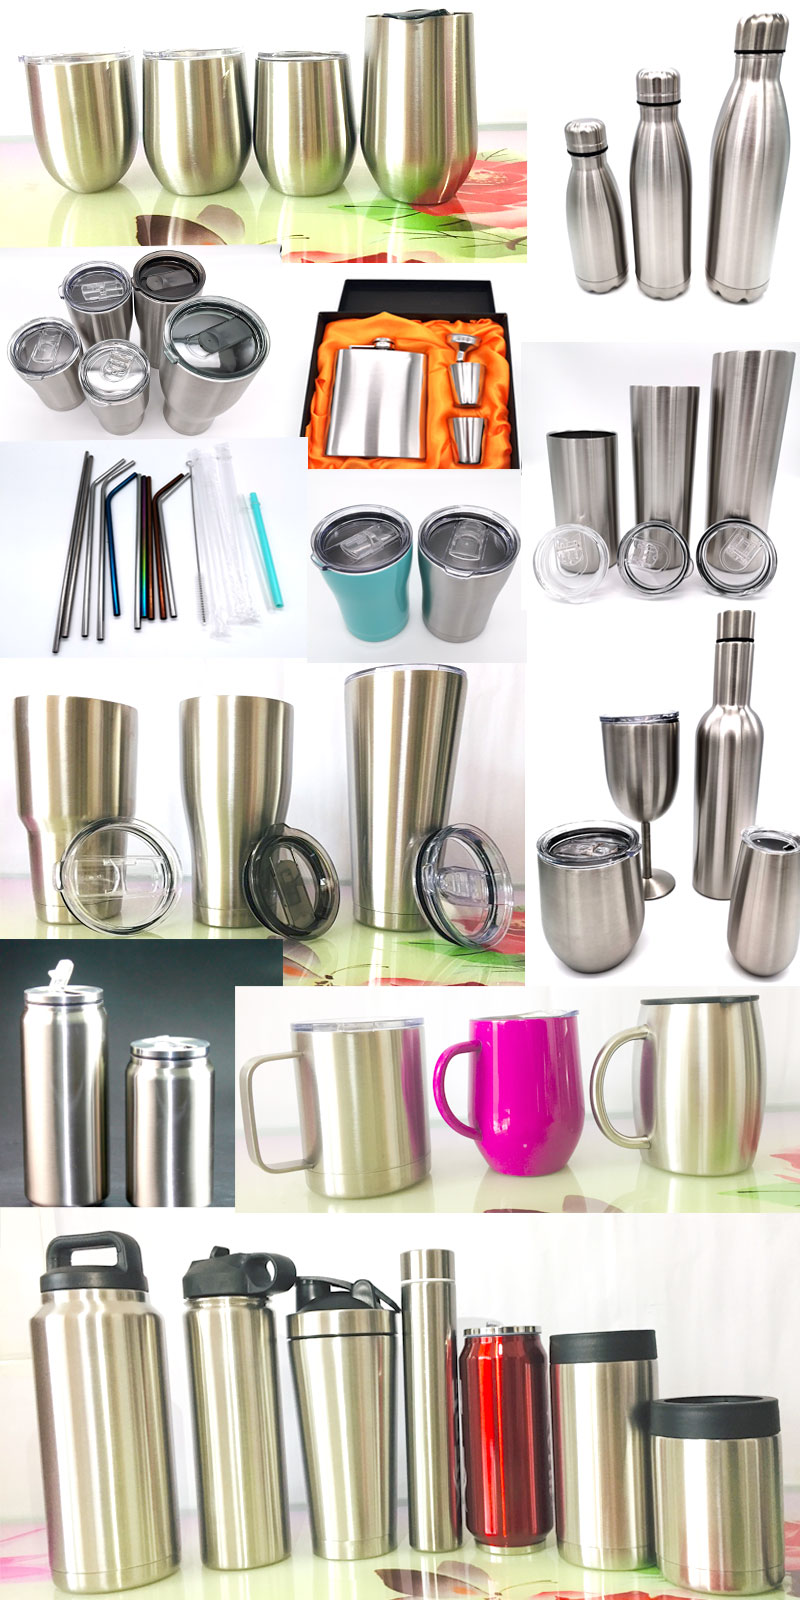 10oz stainless steel wine cup